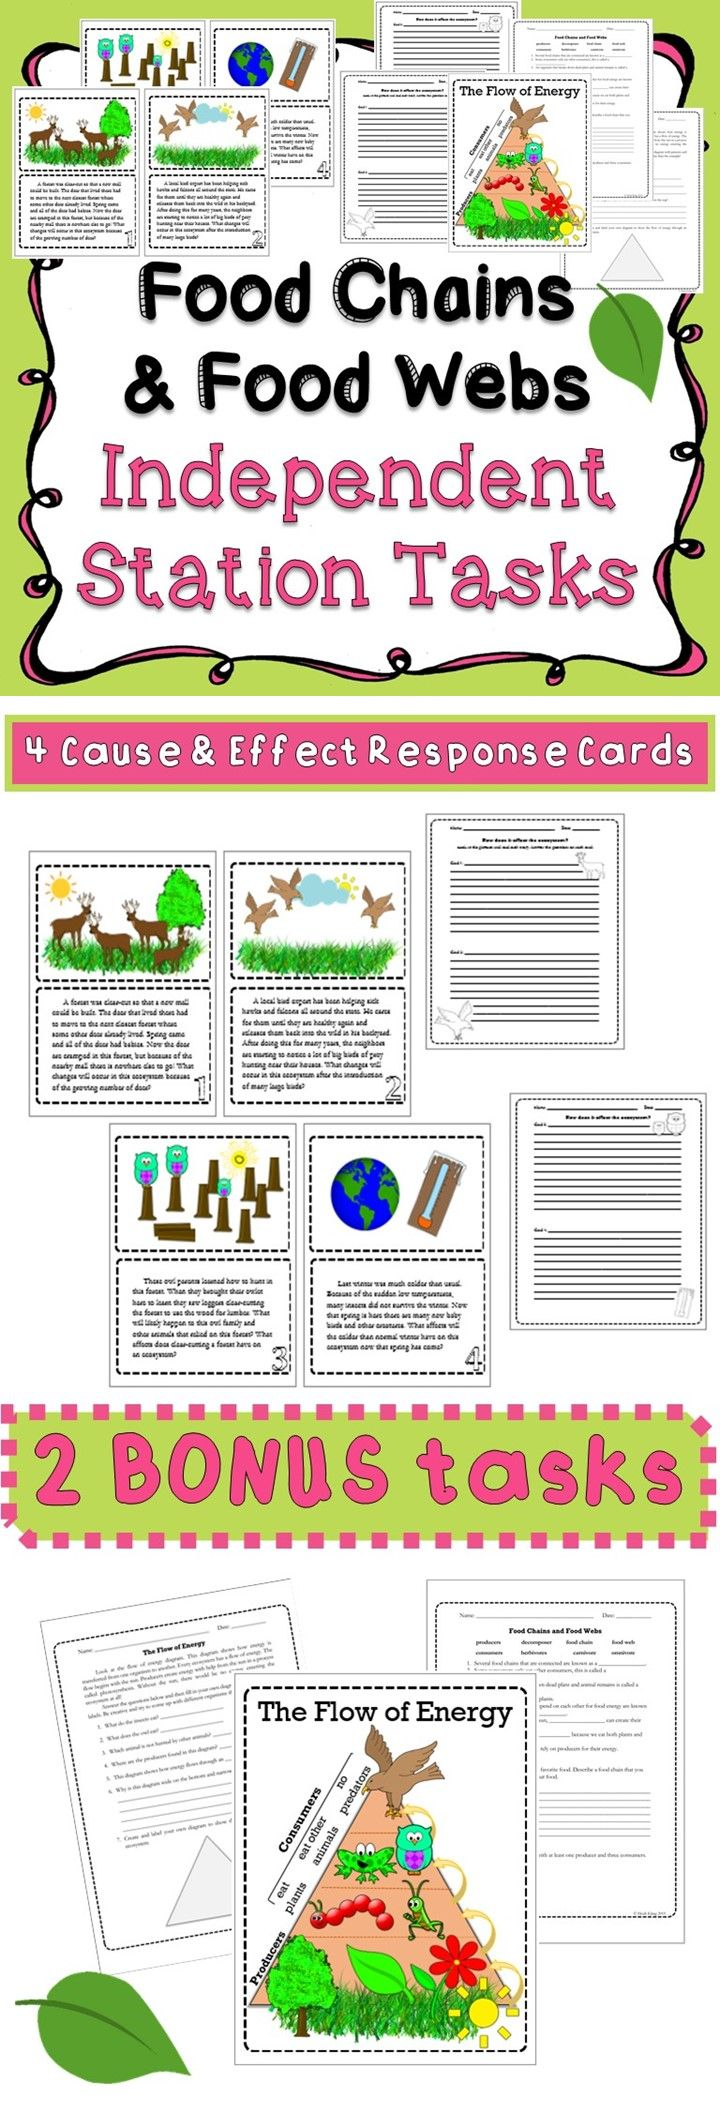 Ecoschools gt home gt resources and guides gt charts and posters - Ecosystems Independent Science Stations